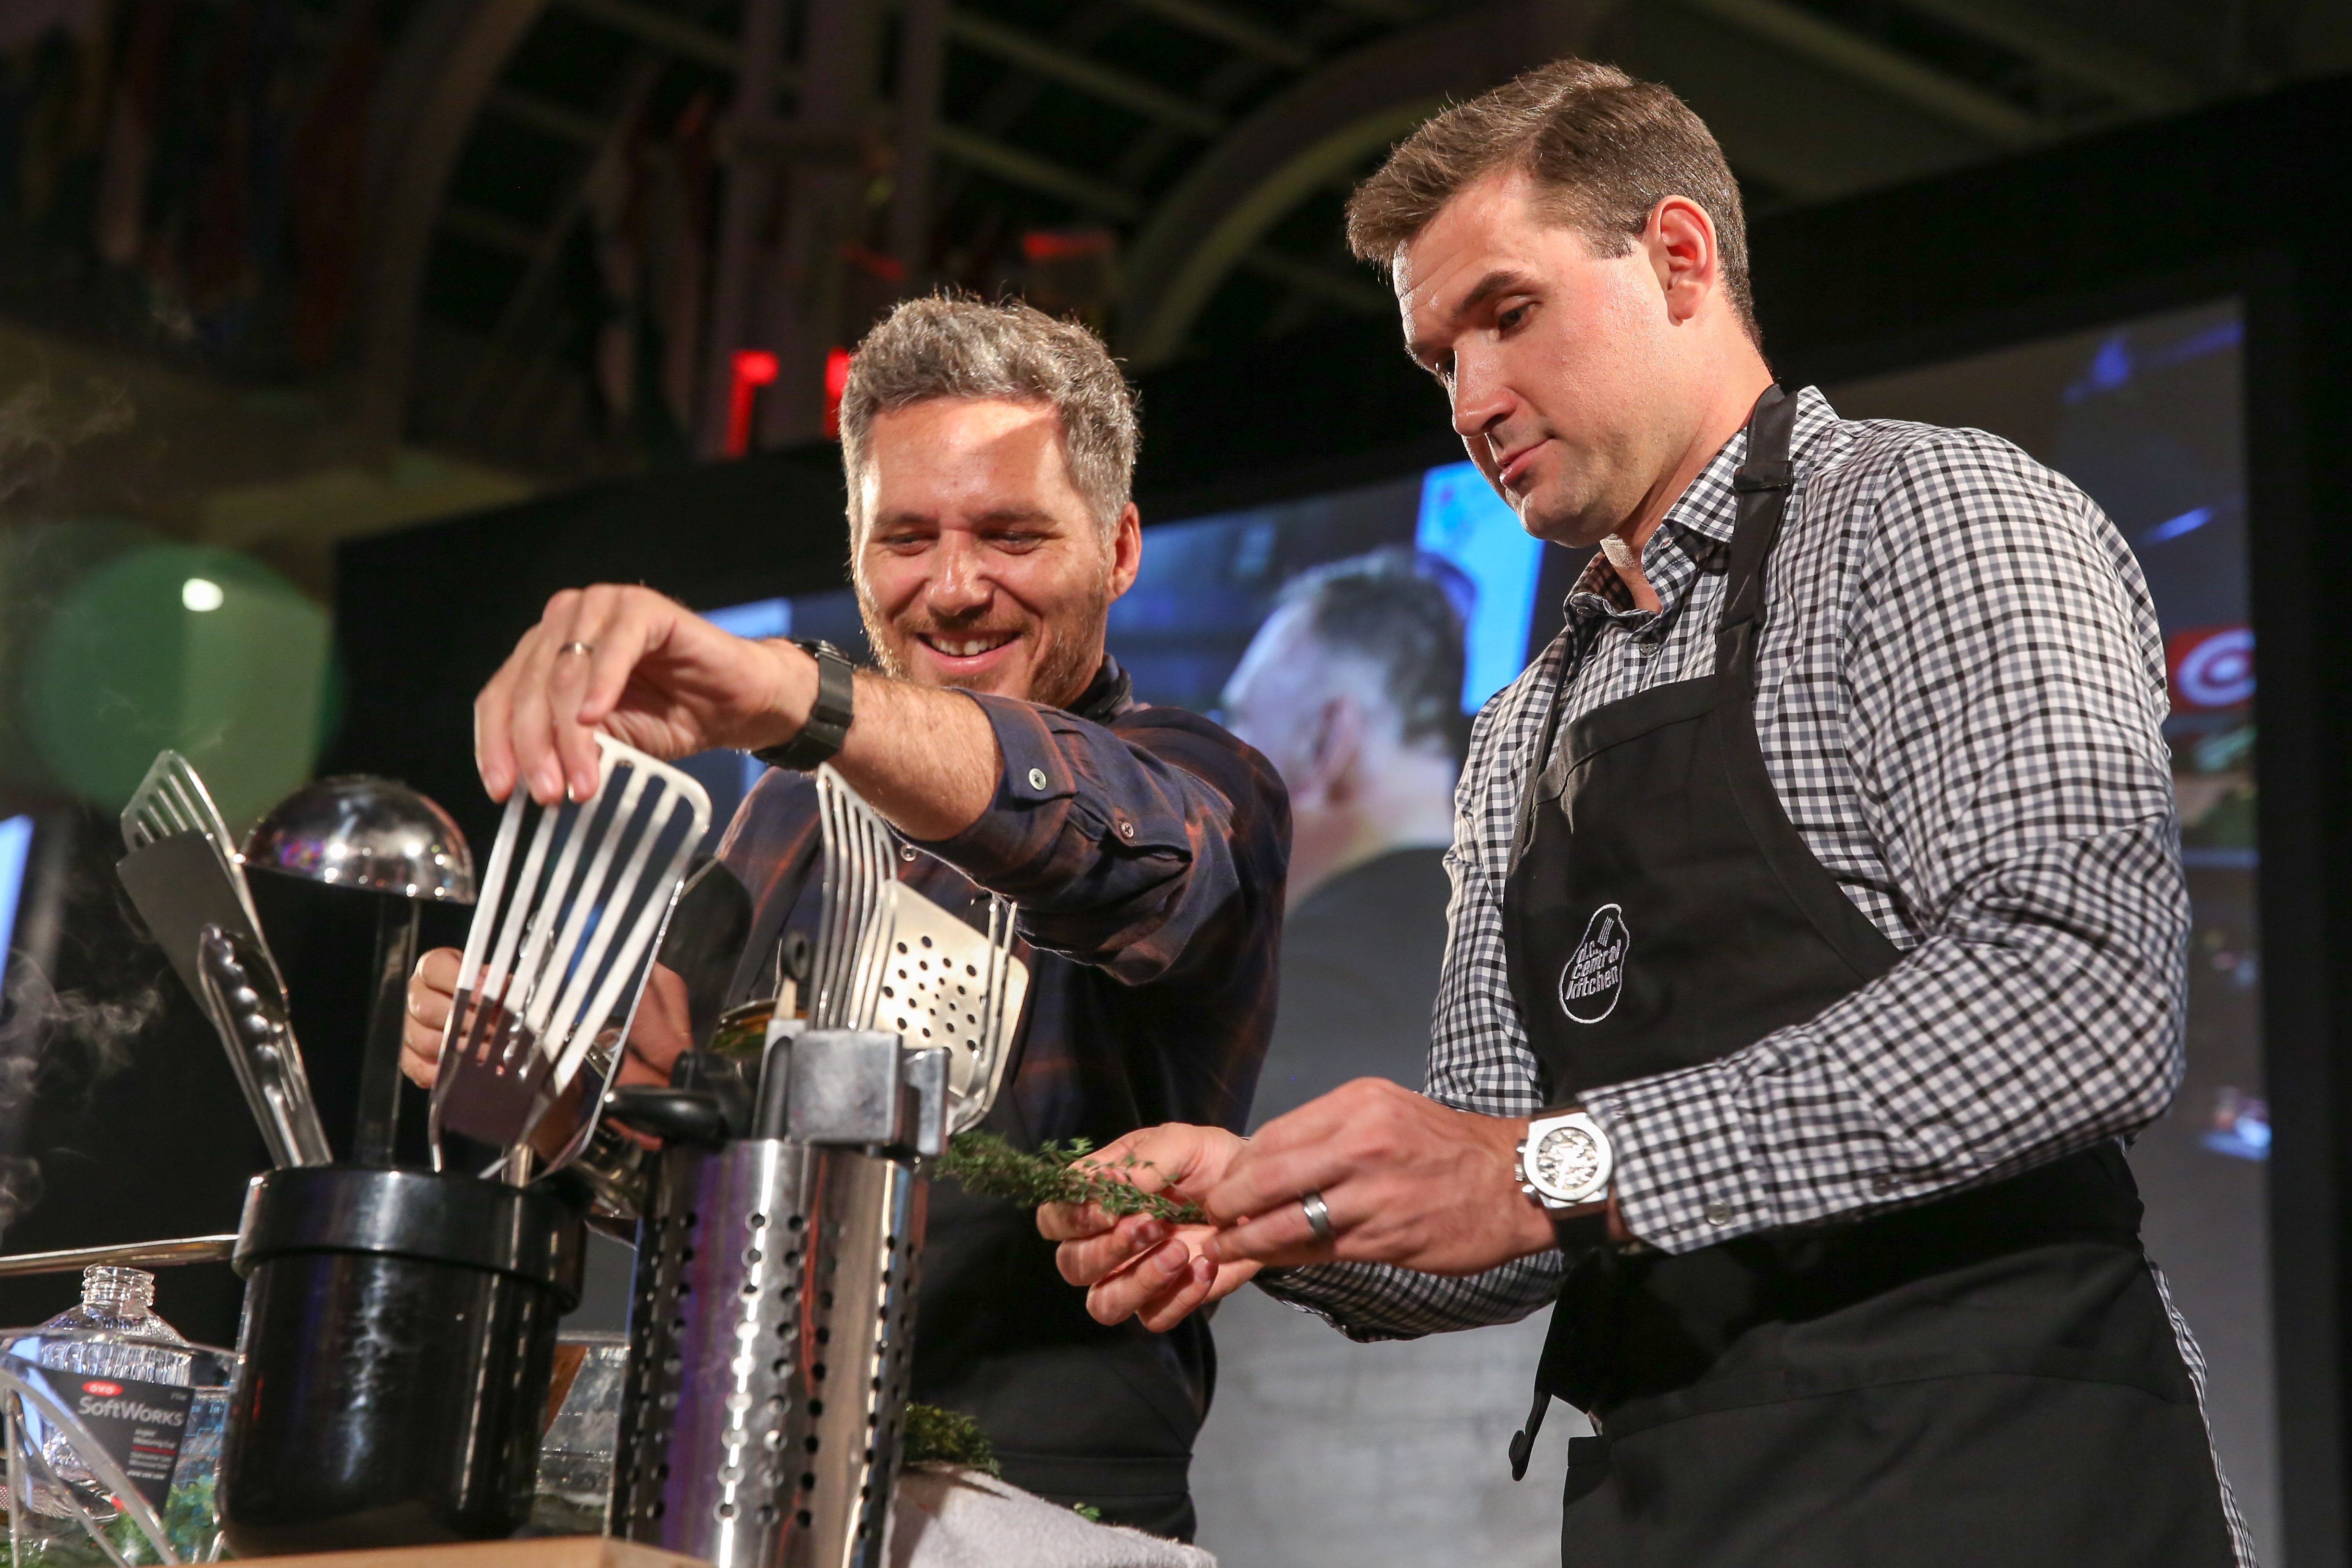 Ryan Zimmerman and co-host Spike Mendelsohn made a dish for a competition after the main event. (Amanda Andrade-Rhoades/DC Refined)